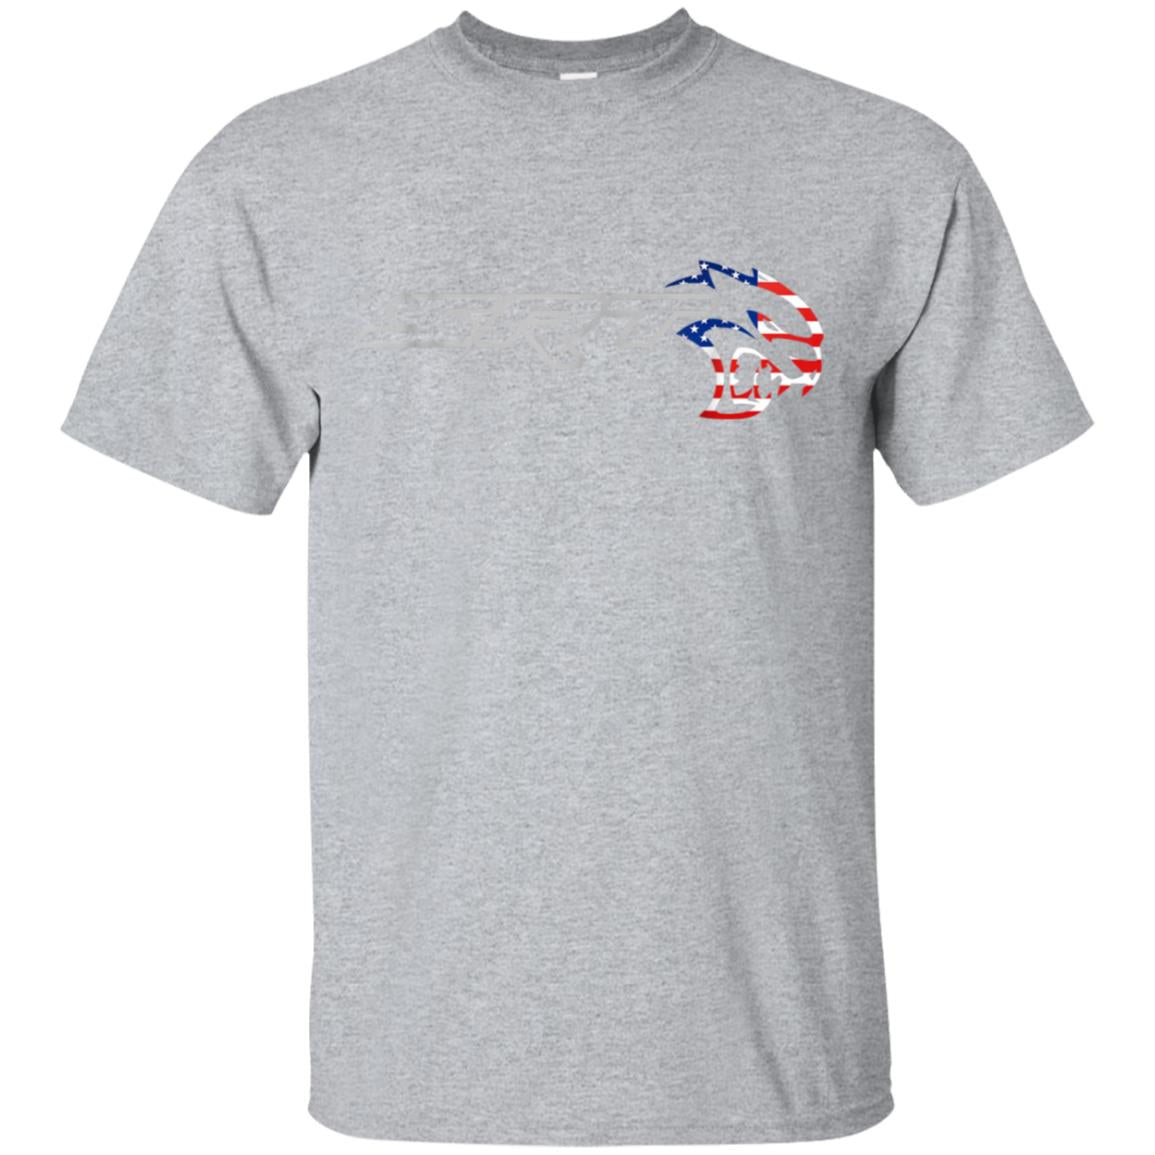 Srt Hell cat Dodge T Shirt (H) Flag US Silver Awesome Gift 99promocode